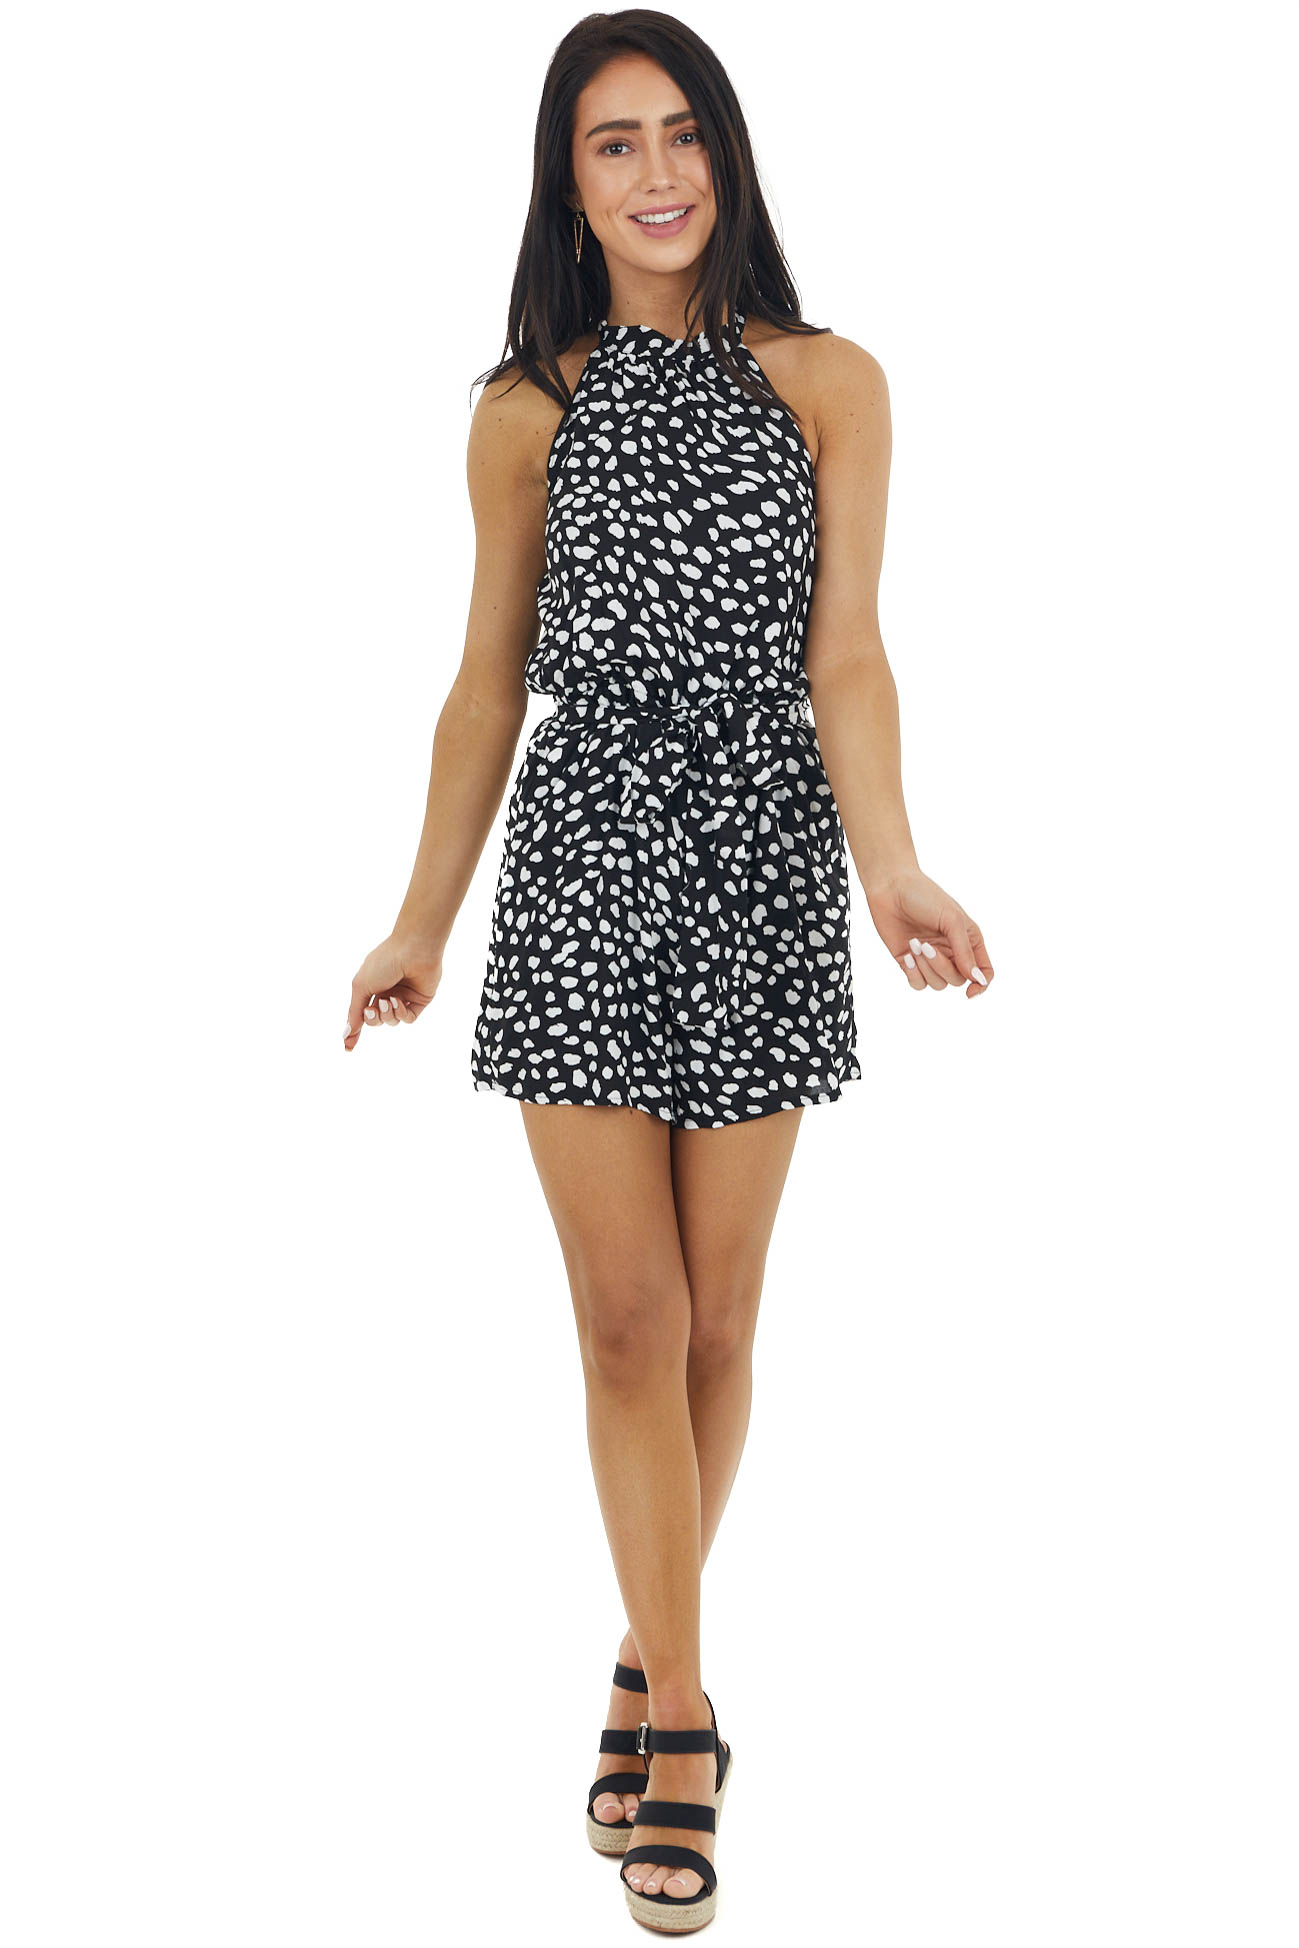 Black and White Spotted Romper with Pockets and Waist Tie